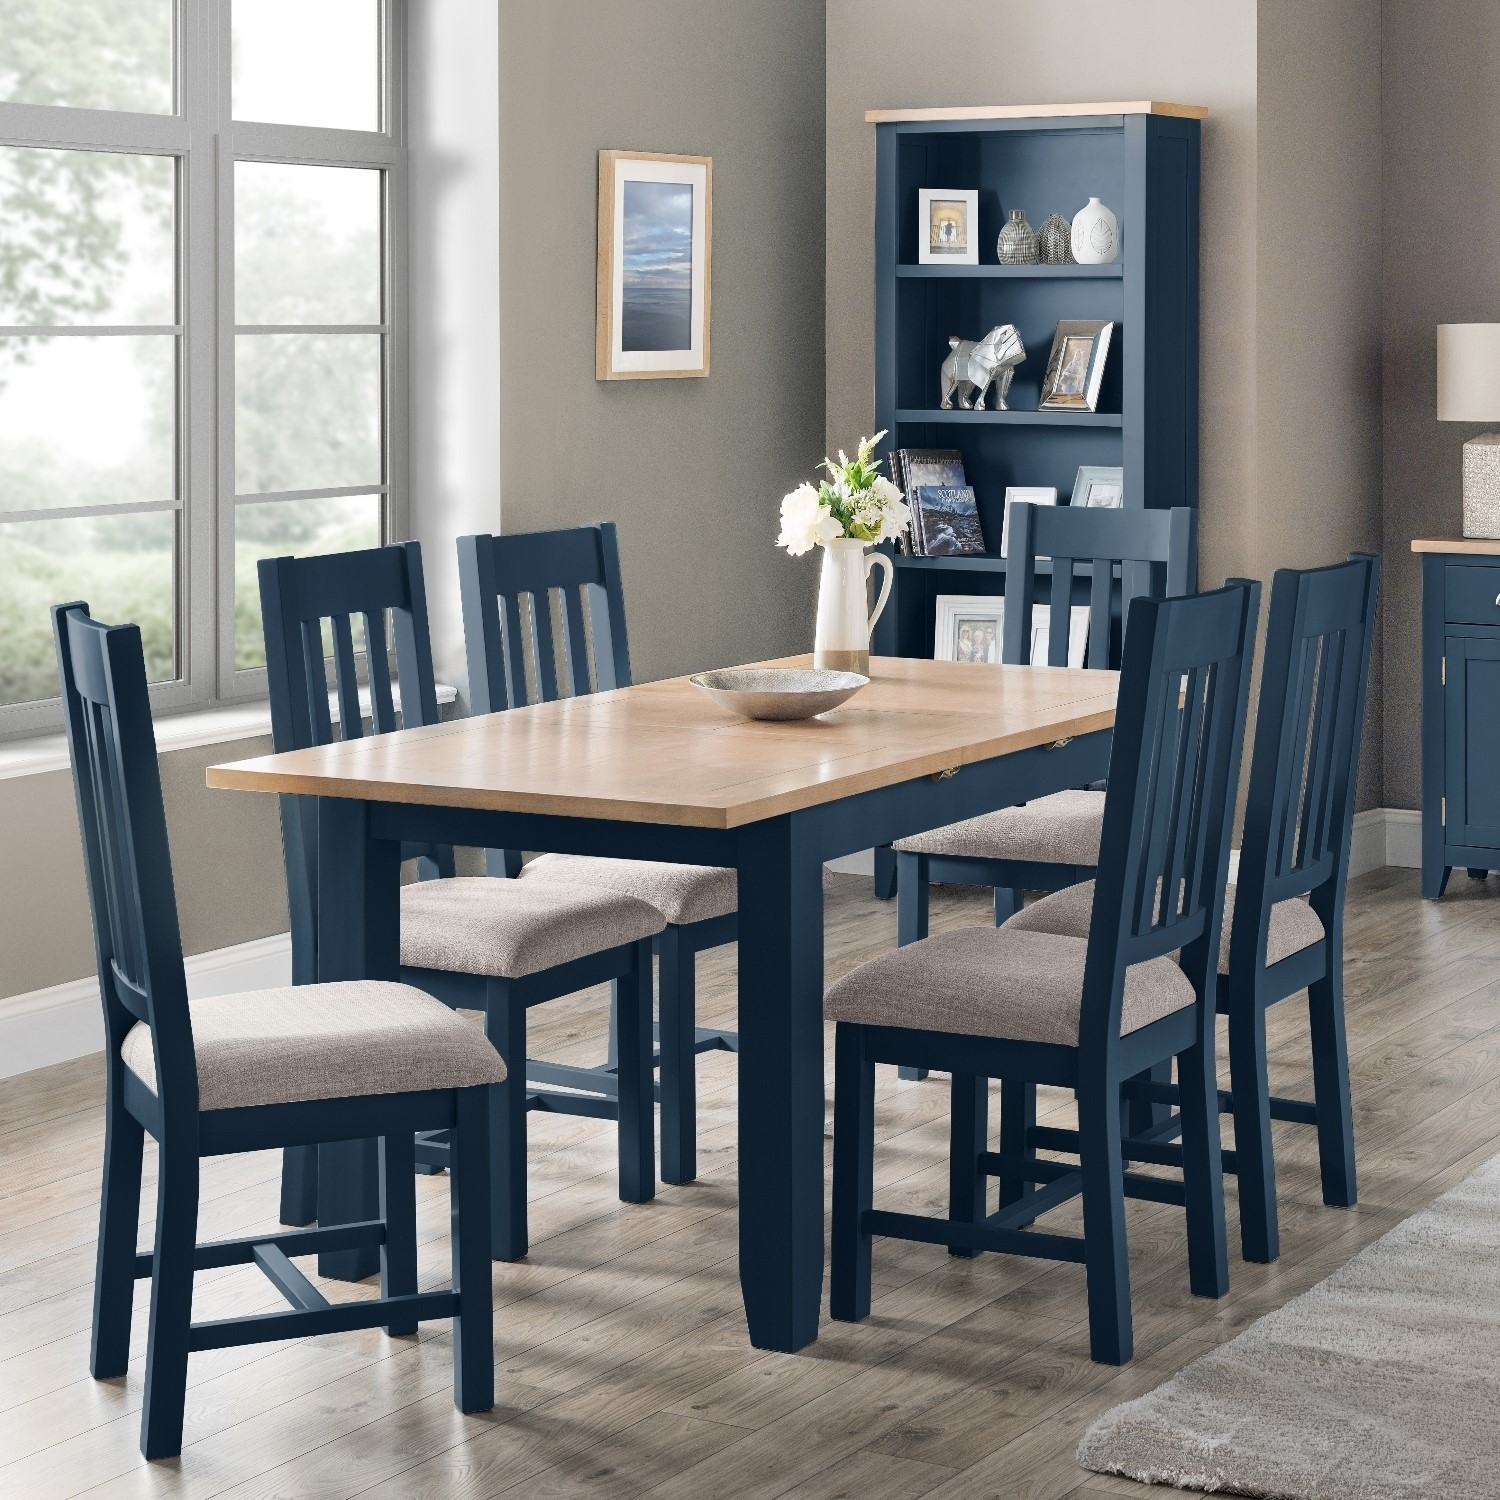 Stupendous Julian Bowen Richmond Dining Table And 6 Richmond Chairs In Blue Alphanode Cool Chair Designs And Ideas Alphanodeonline